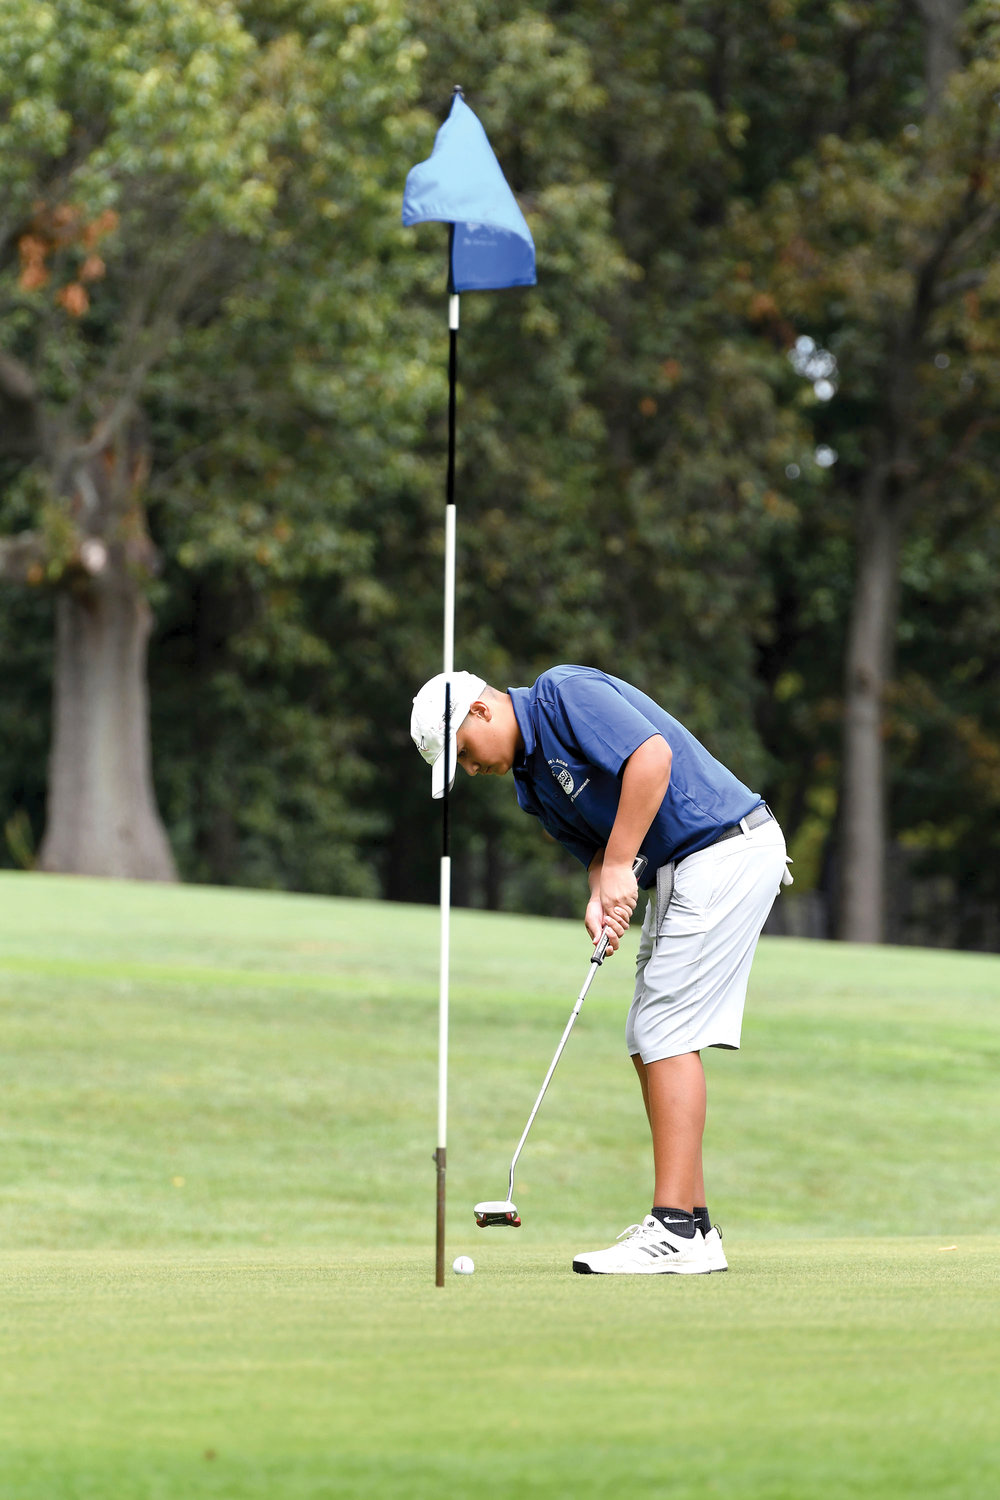 Michael Hui watches the ball head toward the eighth hole during the Dr. Theodore A. Atlas CYO Junior Golf Tournament at Silver Lake Golf Course on Staten Island Sept. 3. Hui and his teammates from Intermediate School 34 won the team championship.